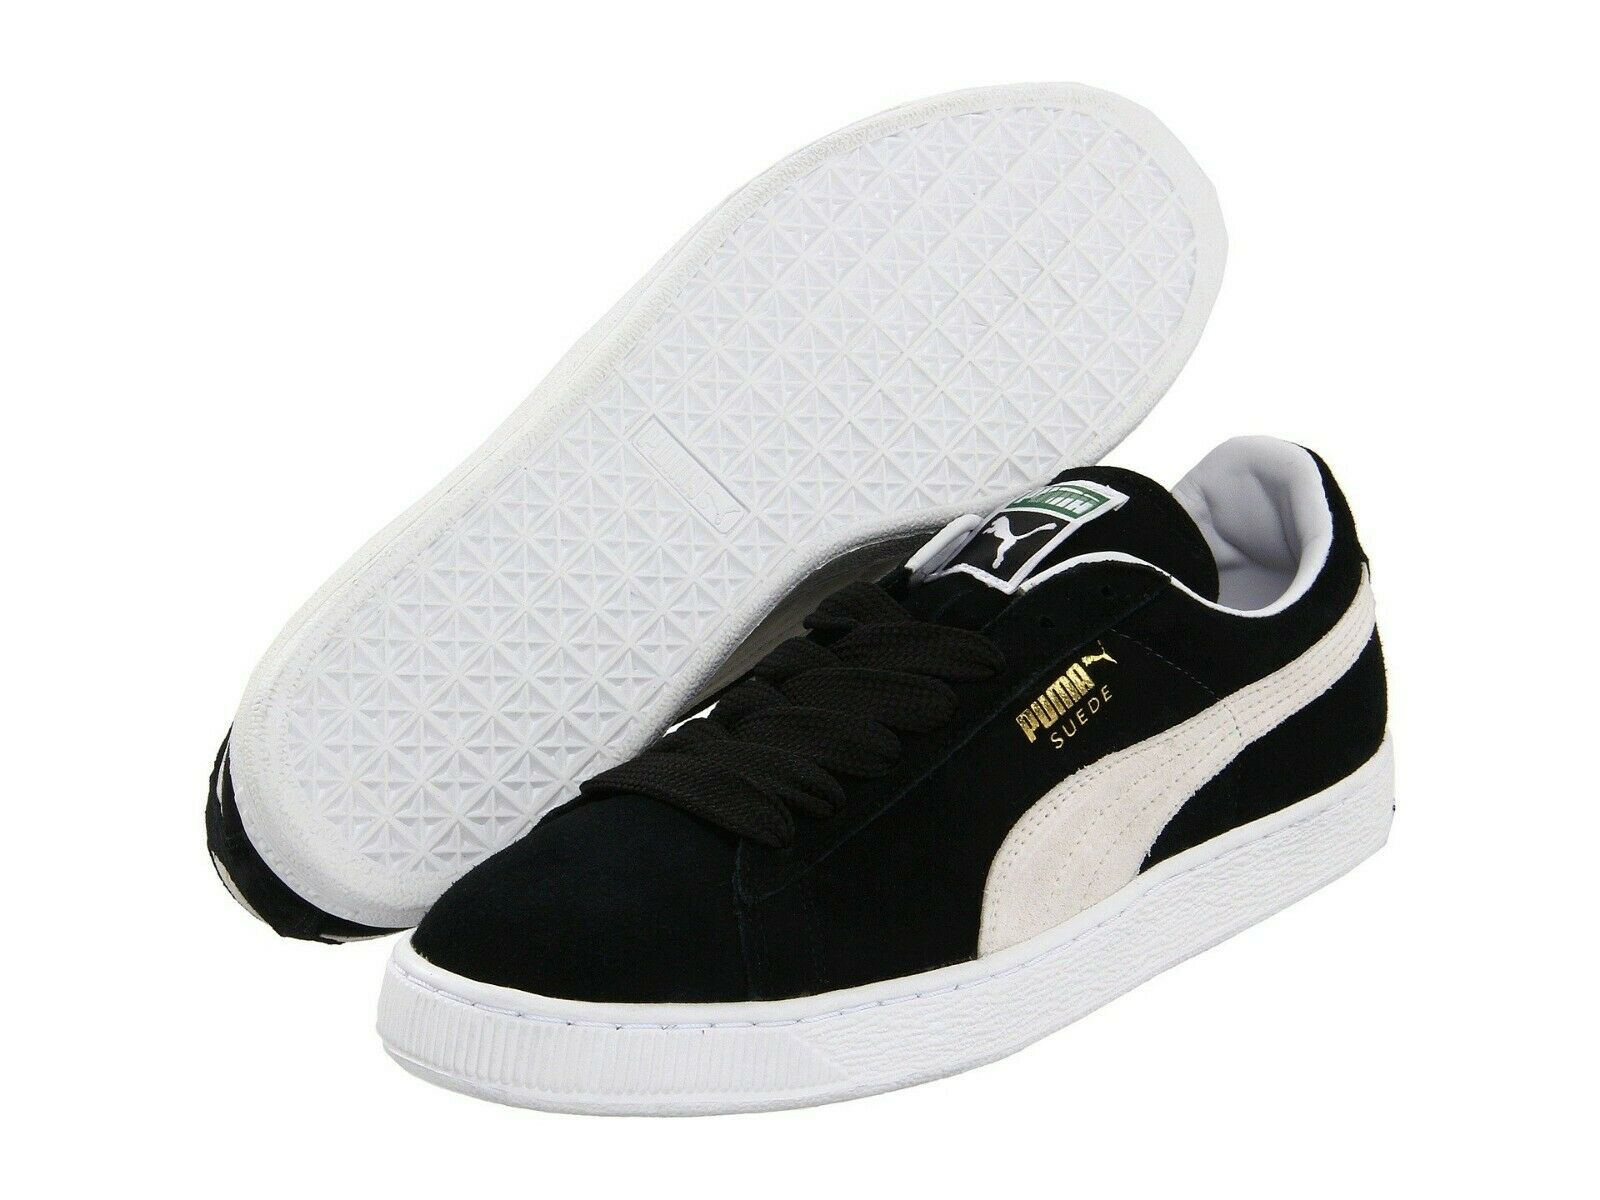 new style f44ca 6fee8 Men's Shoes PUMA SUEDE CLASSIC Casual Sneakers 352634-03 BLACK WHITE